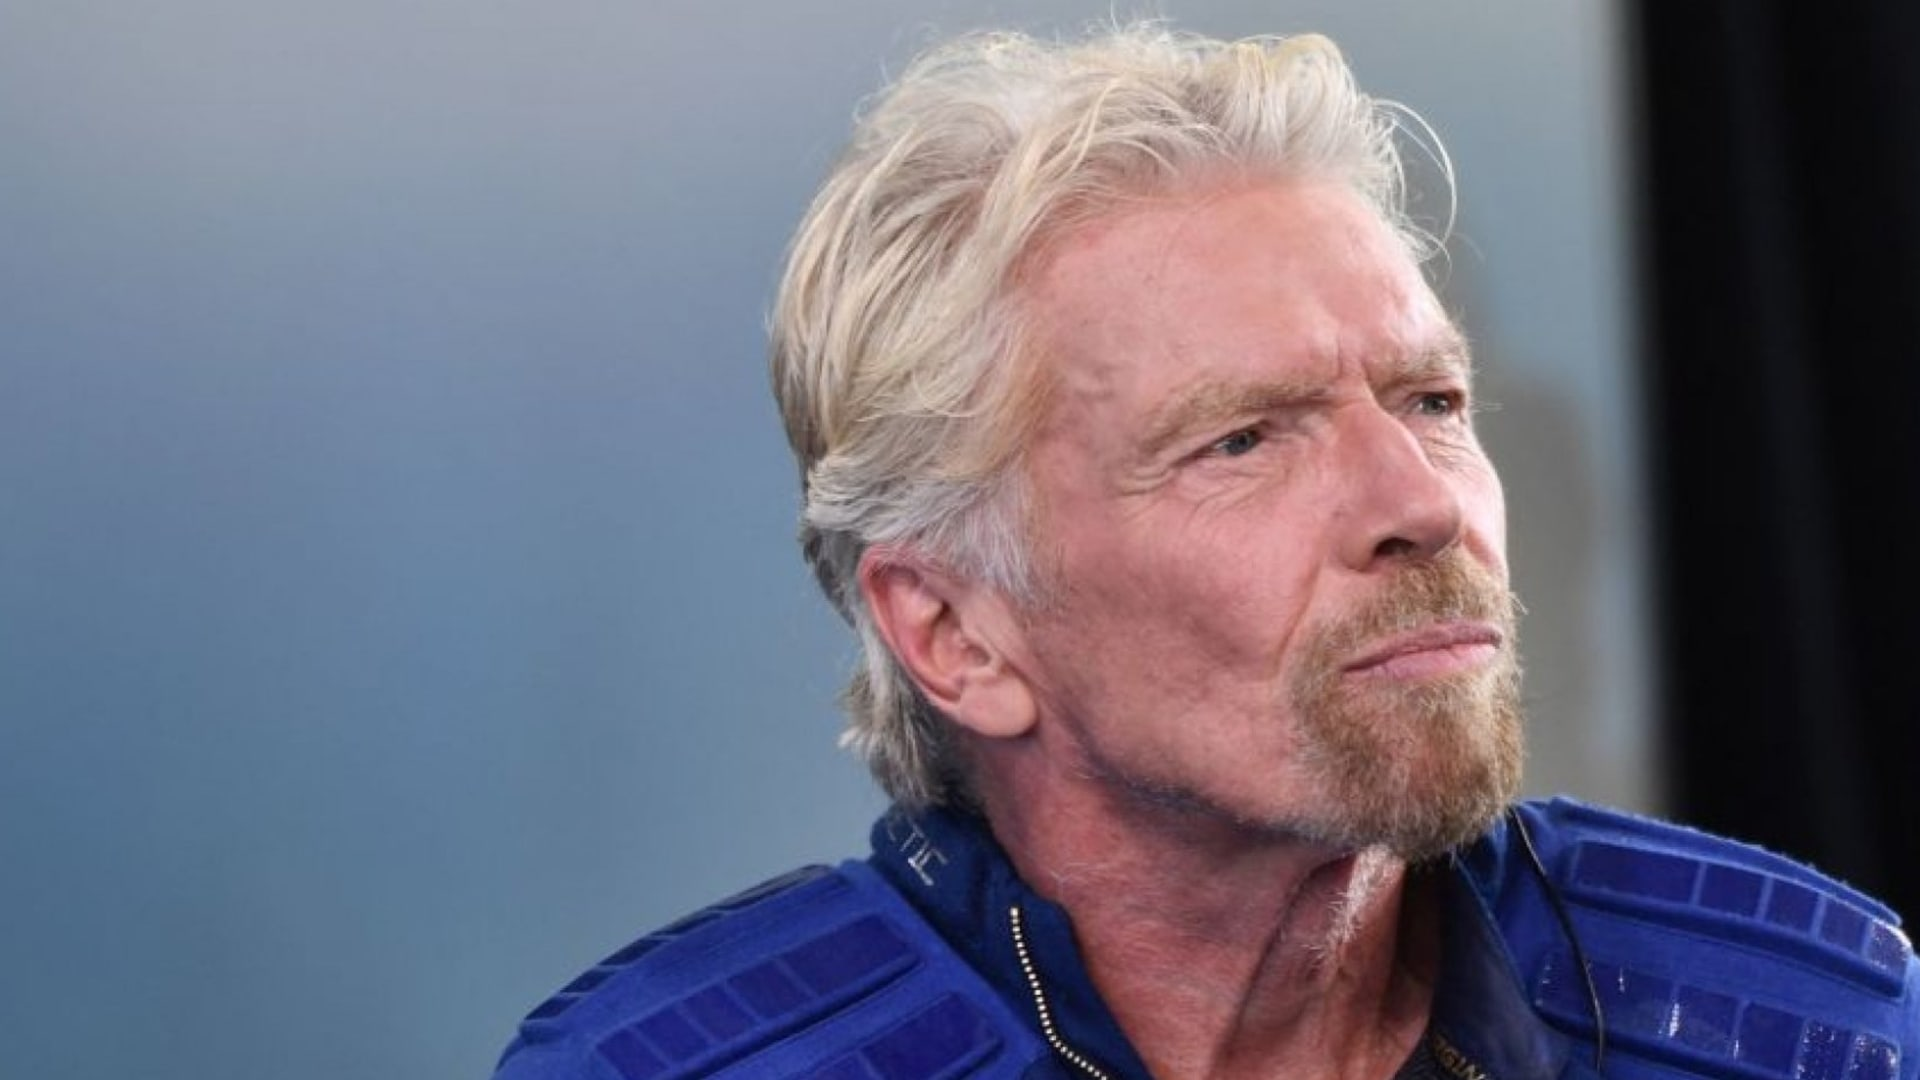 Richard Branson Explains When It's Time to Go Full Throttle on Your Career and When to Take It Easy